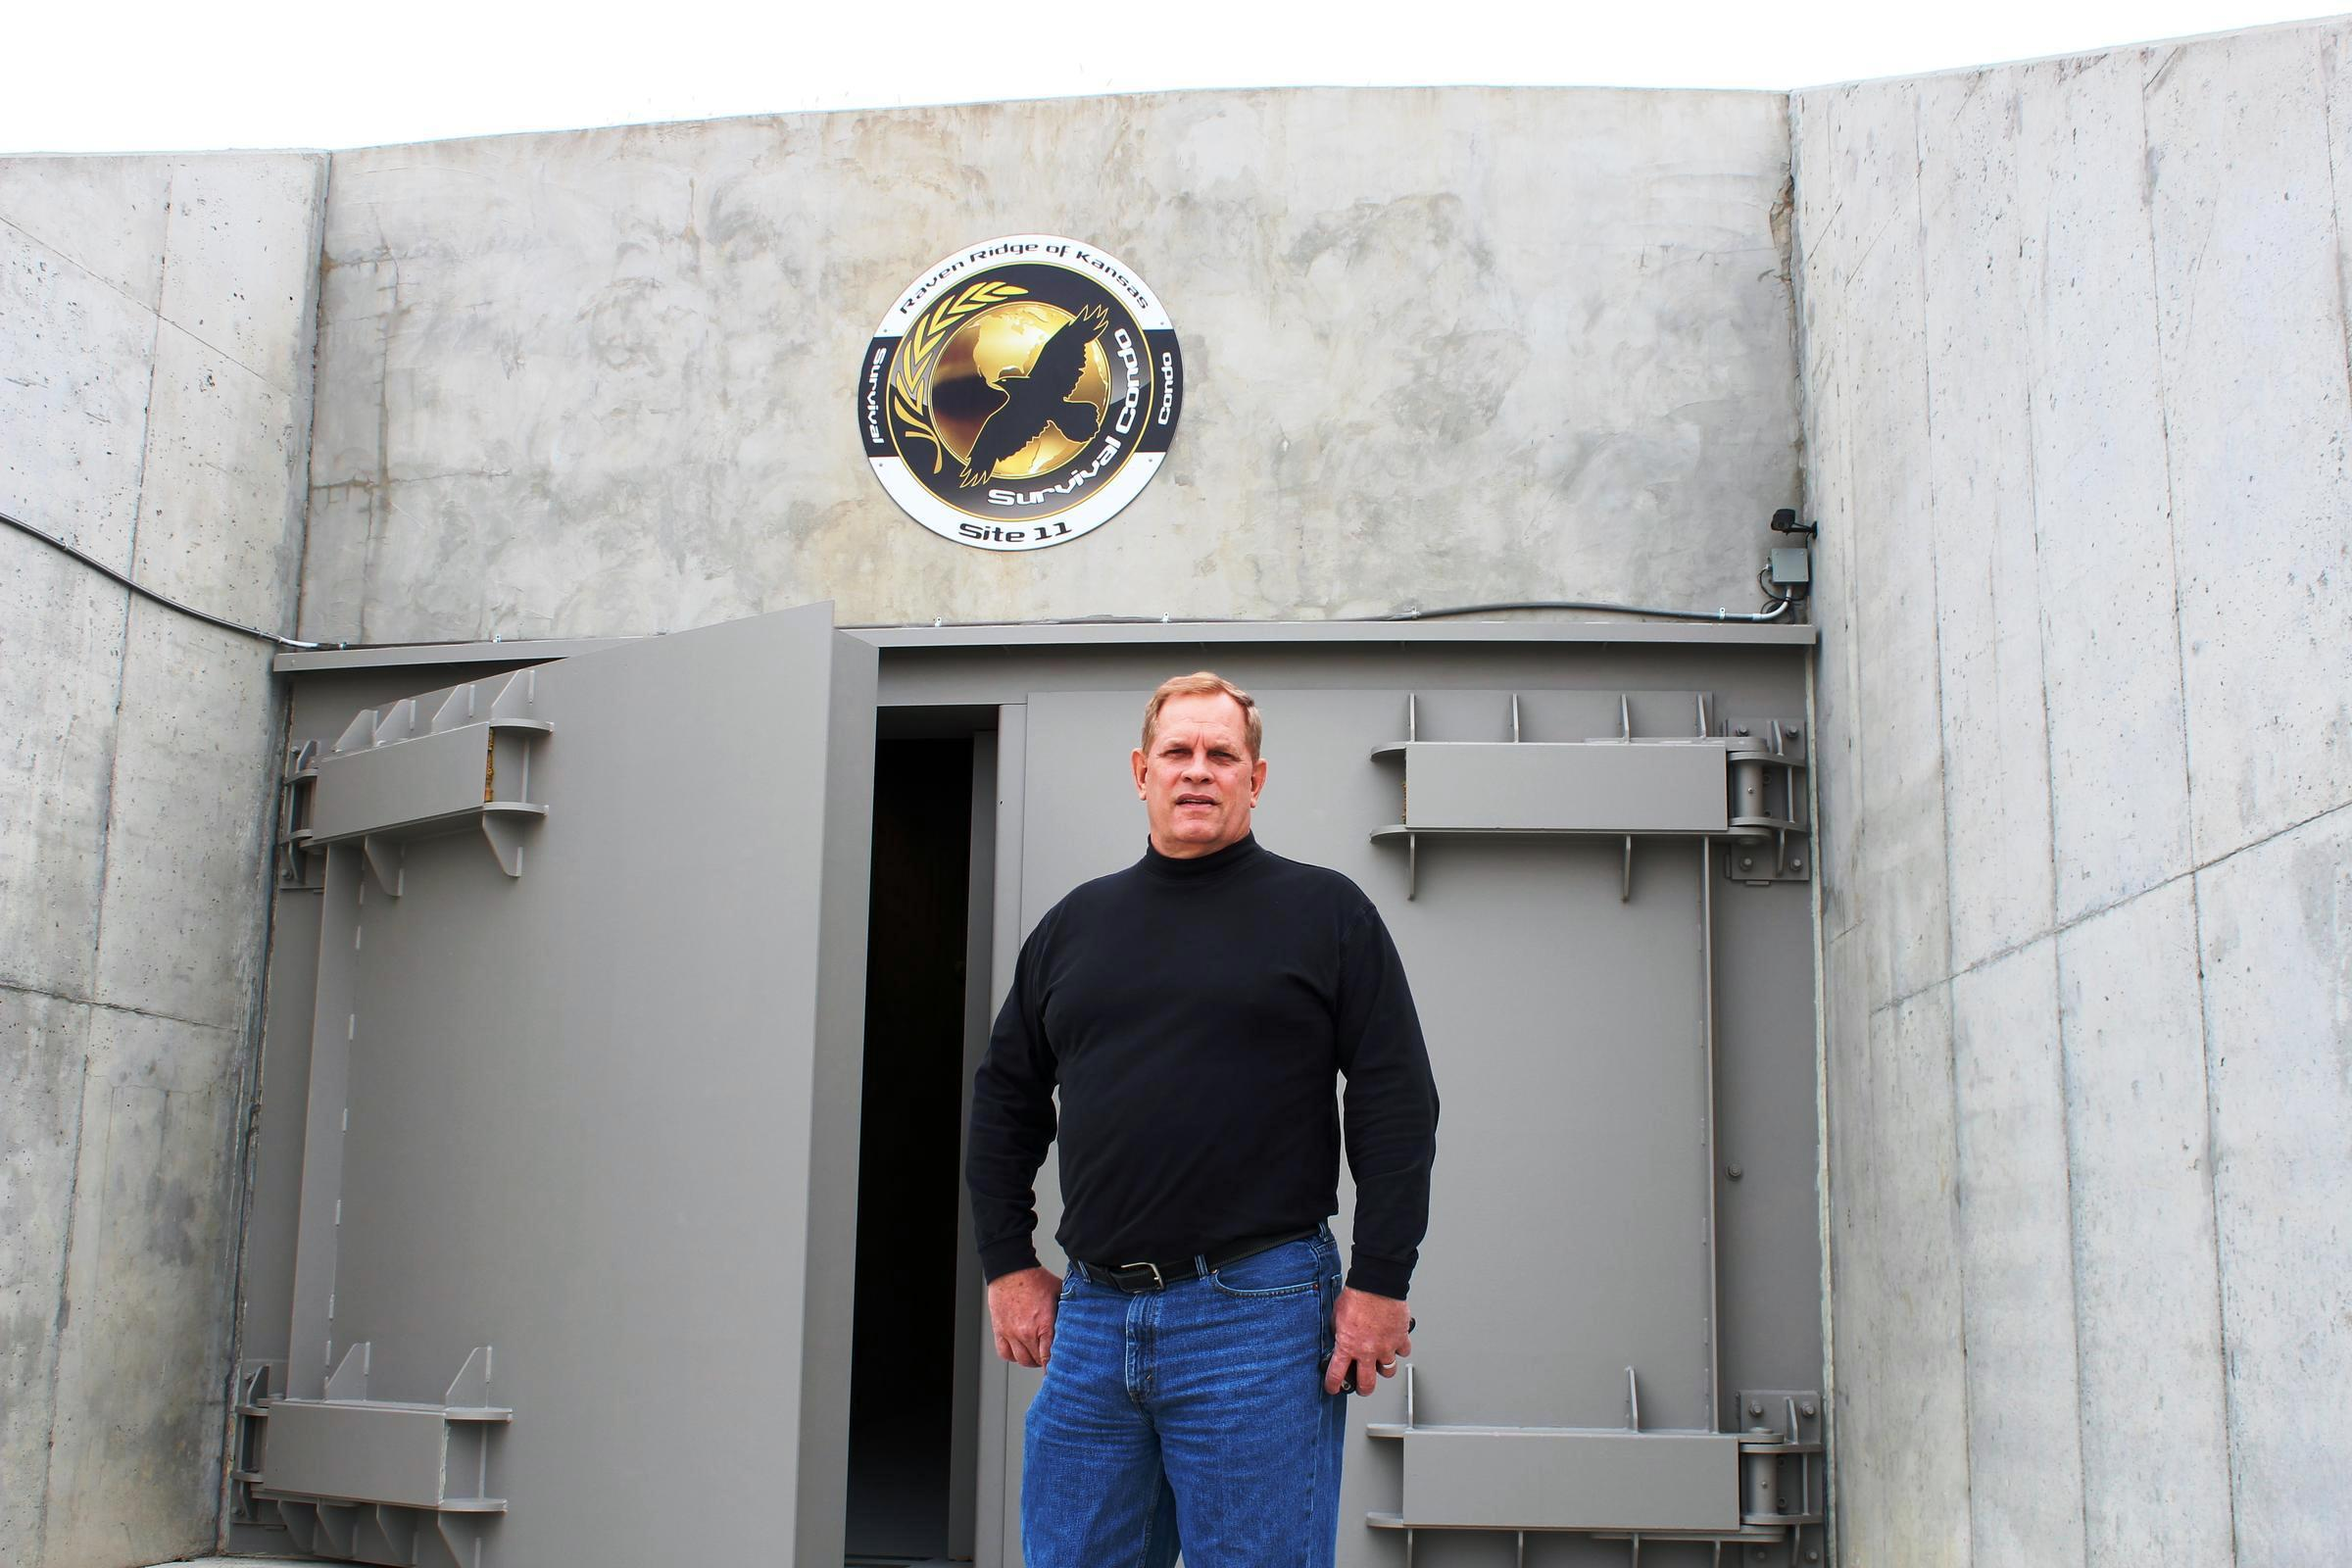 Shelter developer Larry Hall stands outside the blast doors of his survival bunker.  sc 1 st  Harvest Public Media & In An Age Of Anxiety Apocalypse-Proof Bunkers On The Great Plains ...